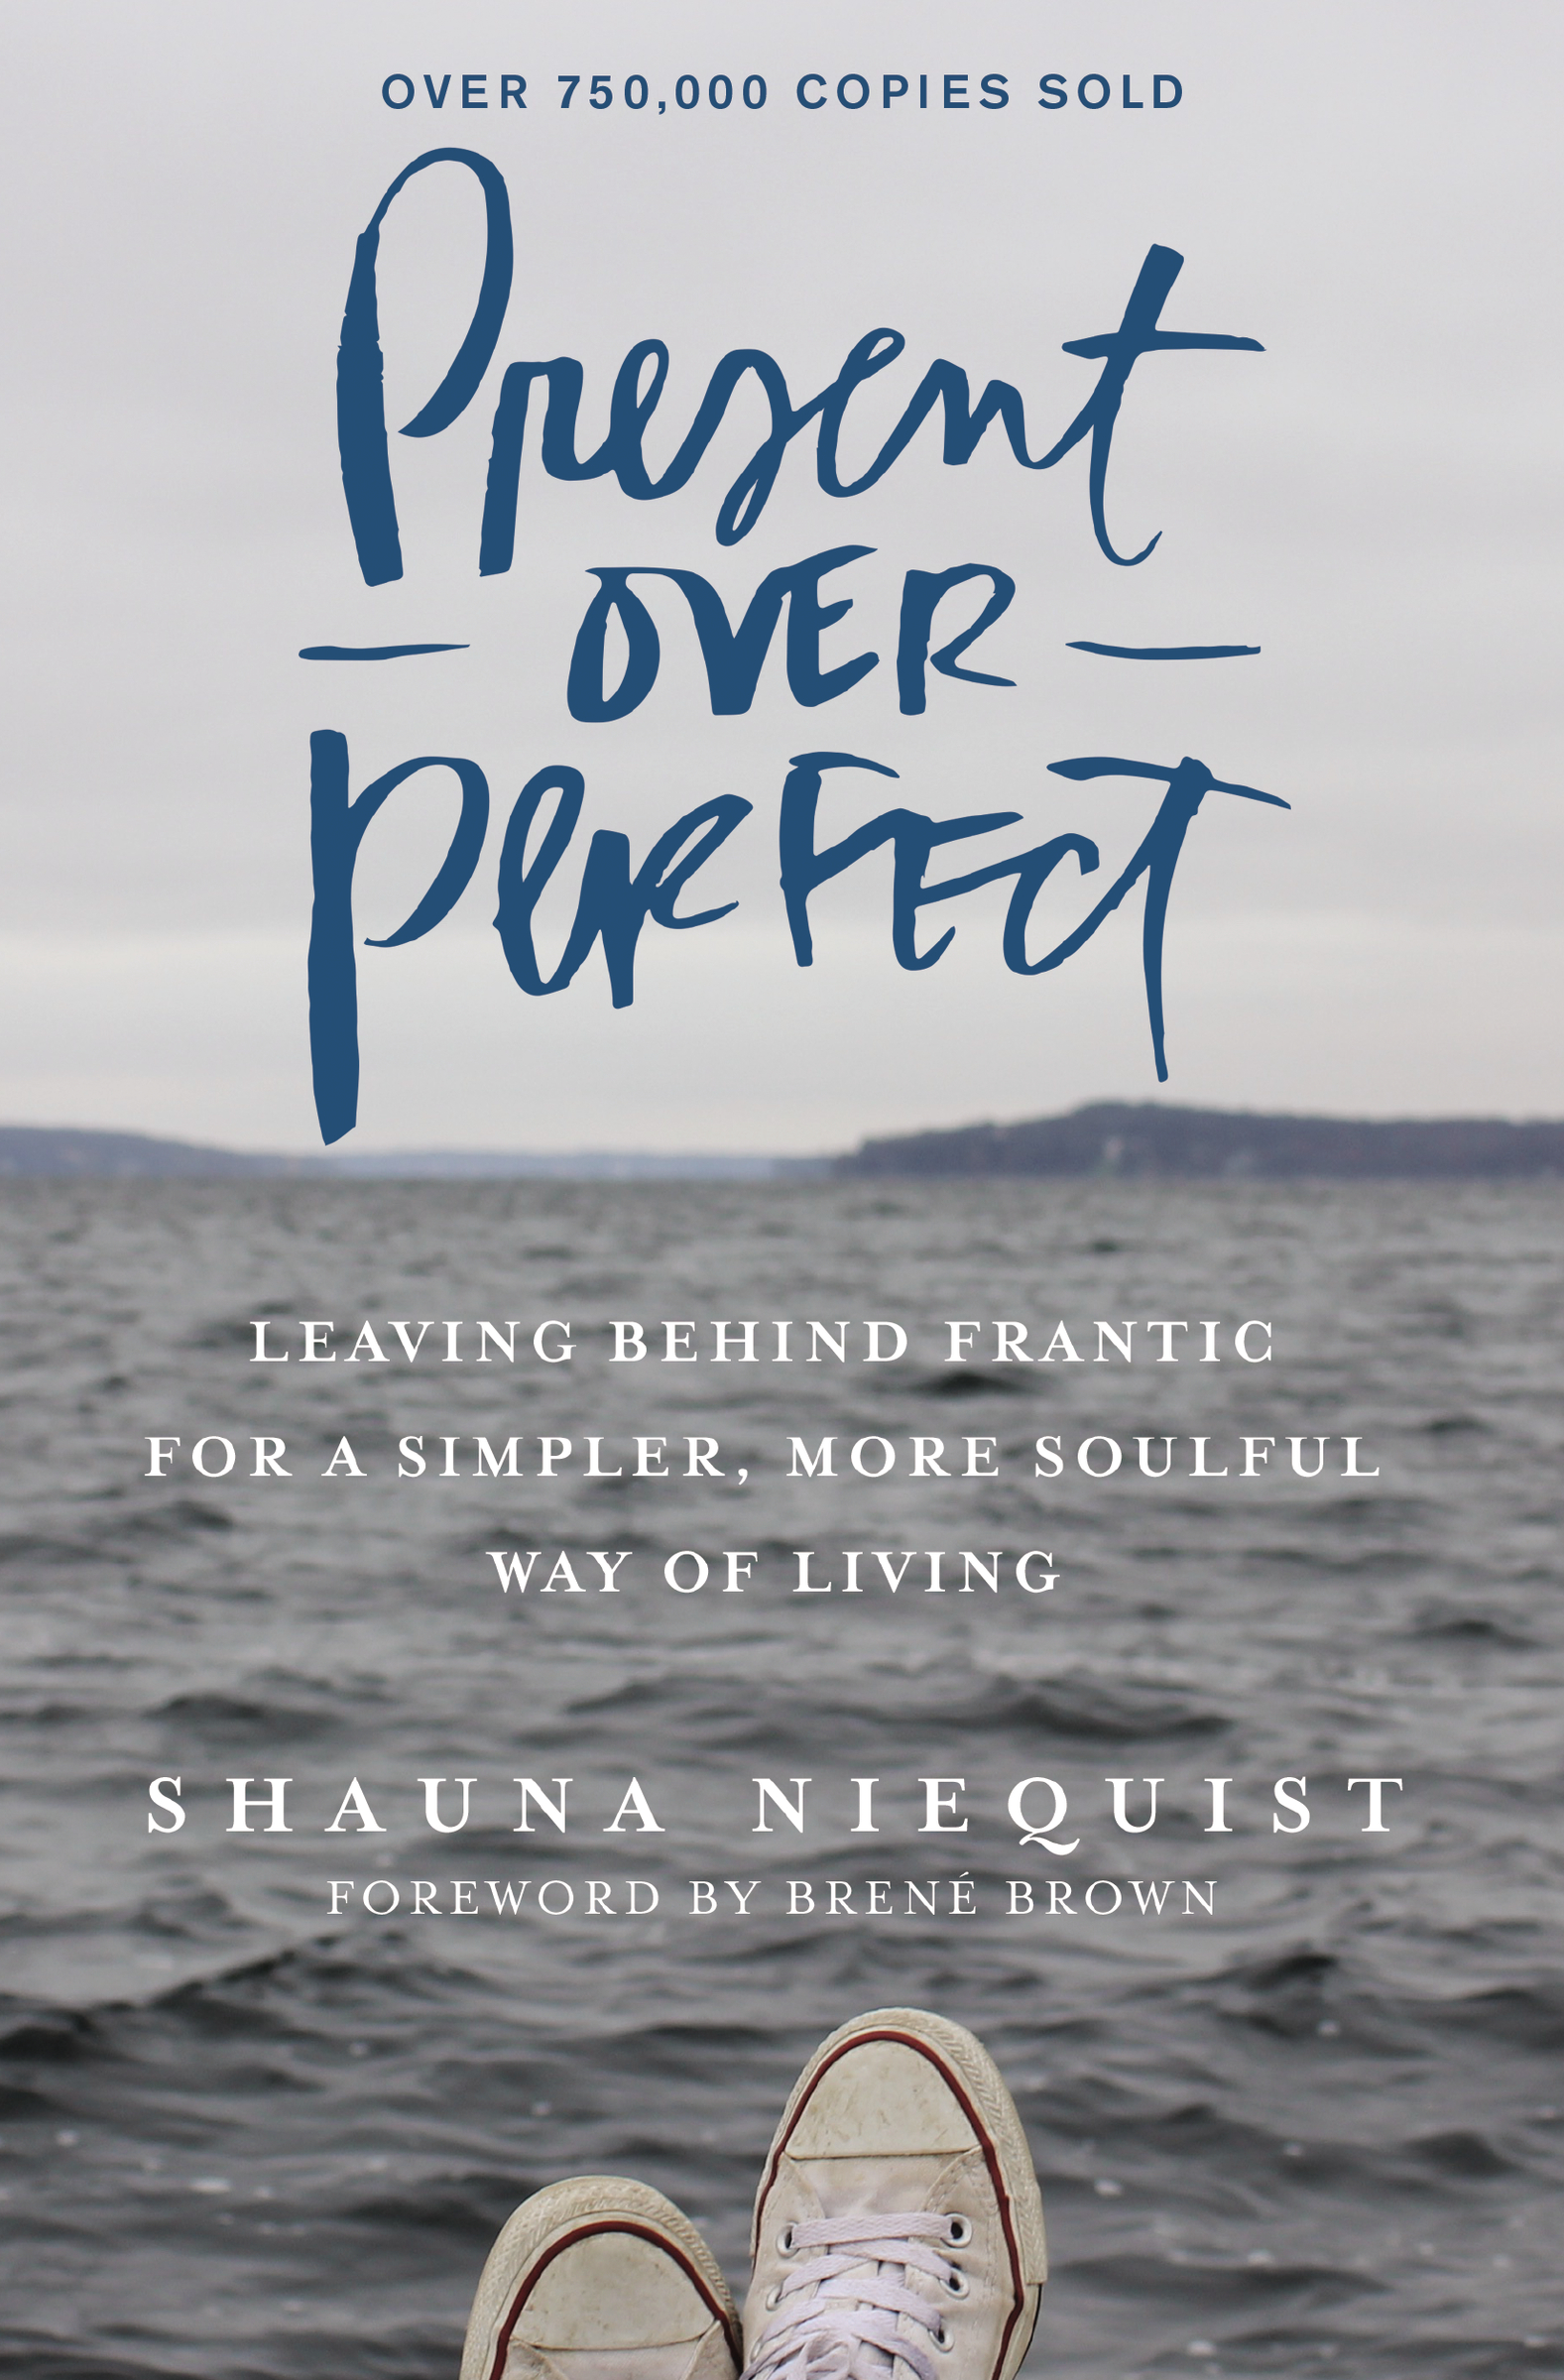 Present Over Perfect Leaving Behind Frantic for a Simpler, More Soulful Way of Living